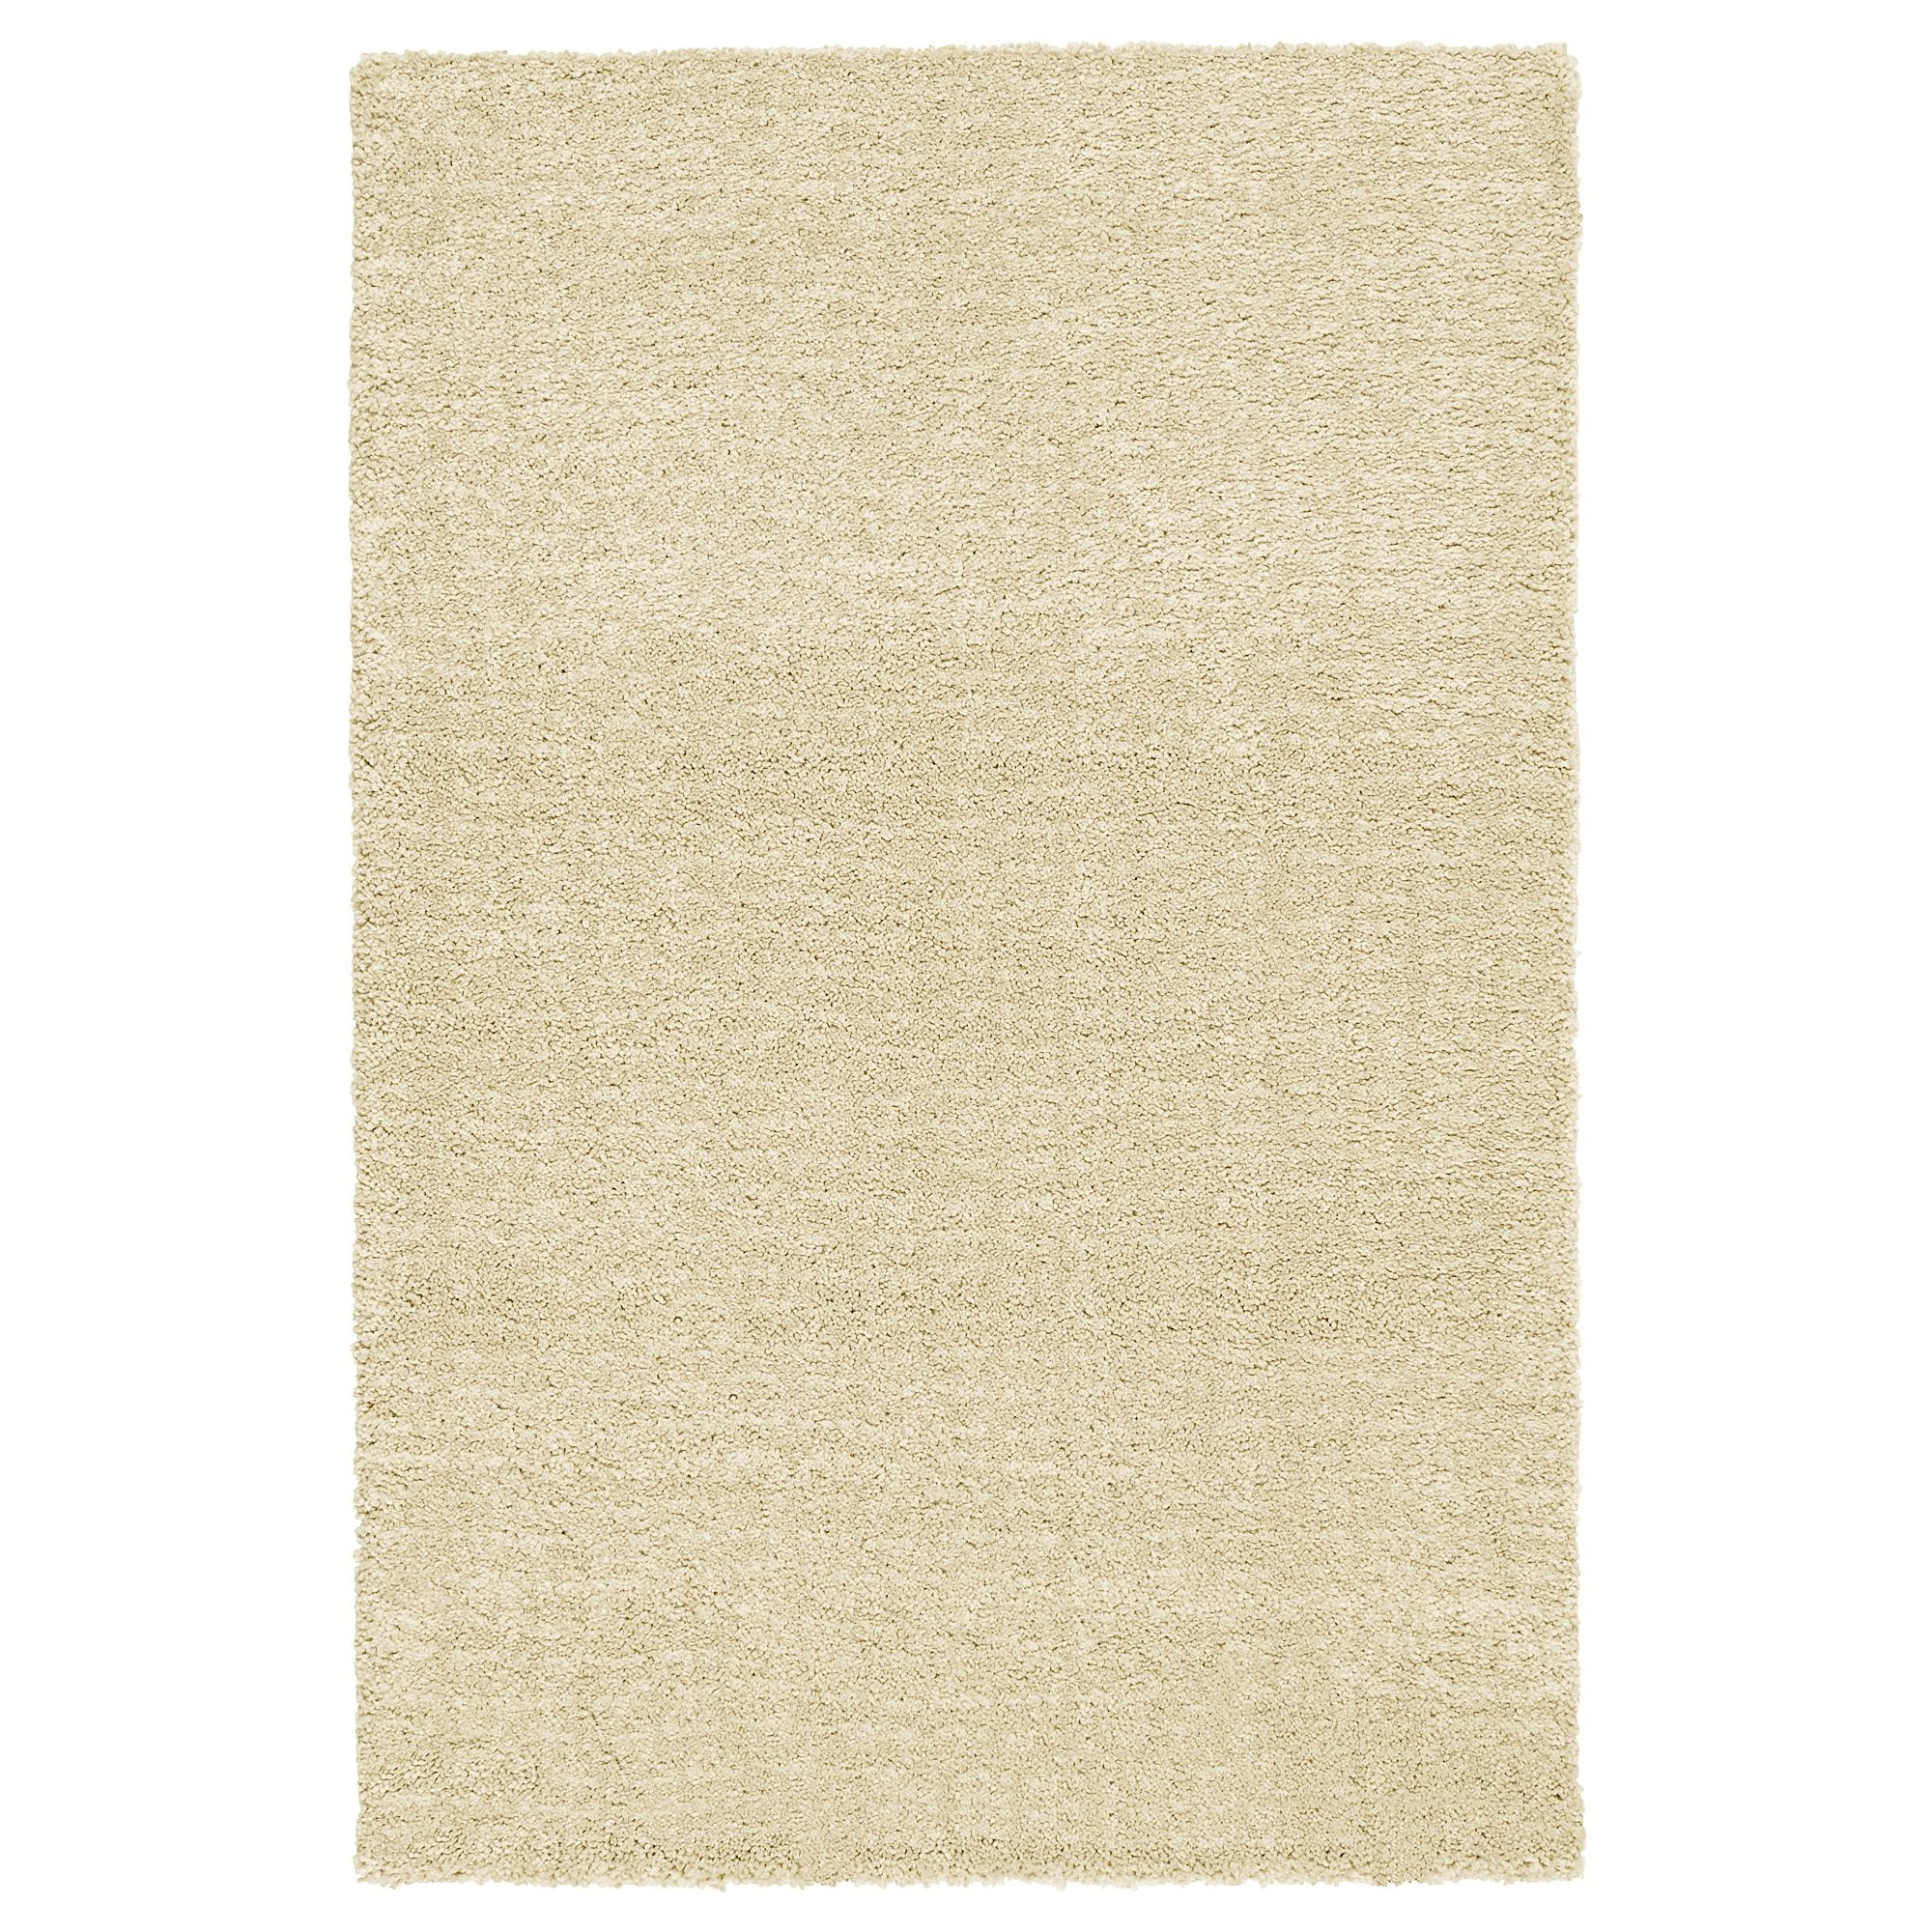 Langsted Rug Low Pile Beige 4 4 X6 5 Big Rugs Rugs Ikea